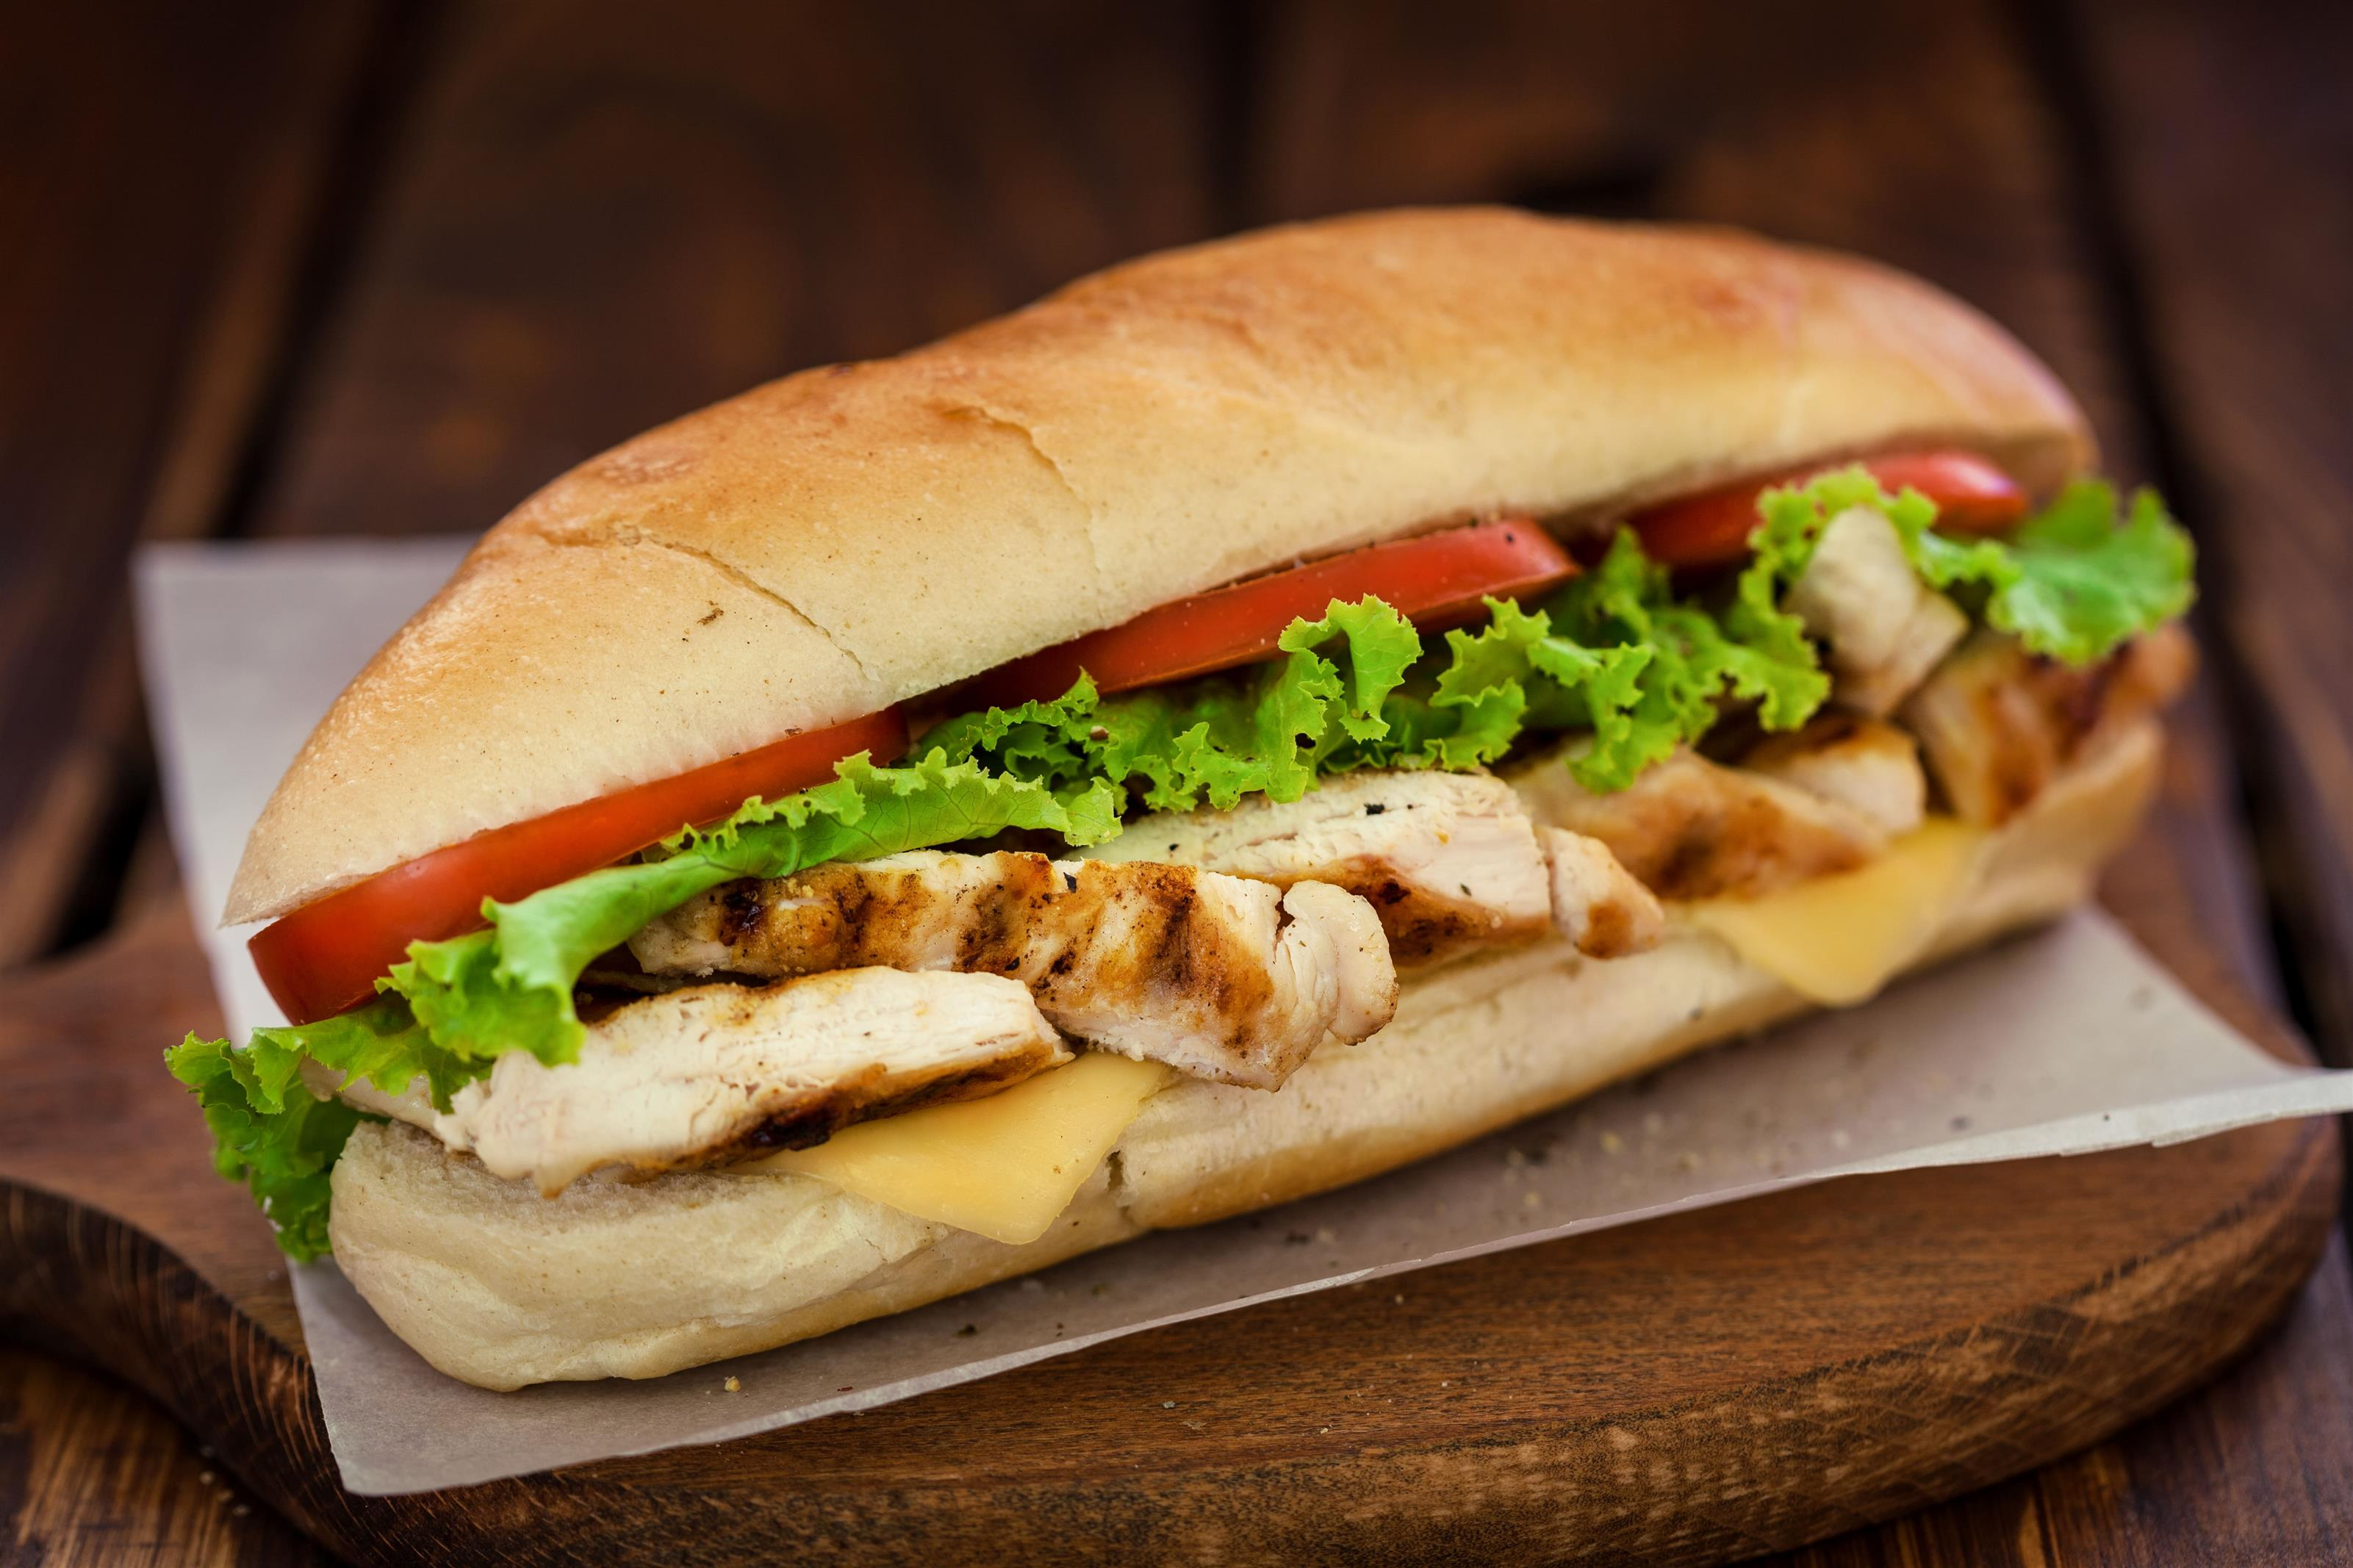 Chicken sandwich with romaine lettuce, cheddar cheese, tomatoes, ranch dressing.